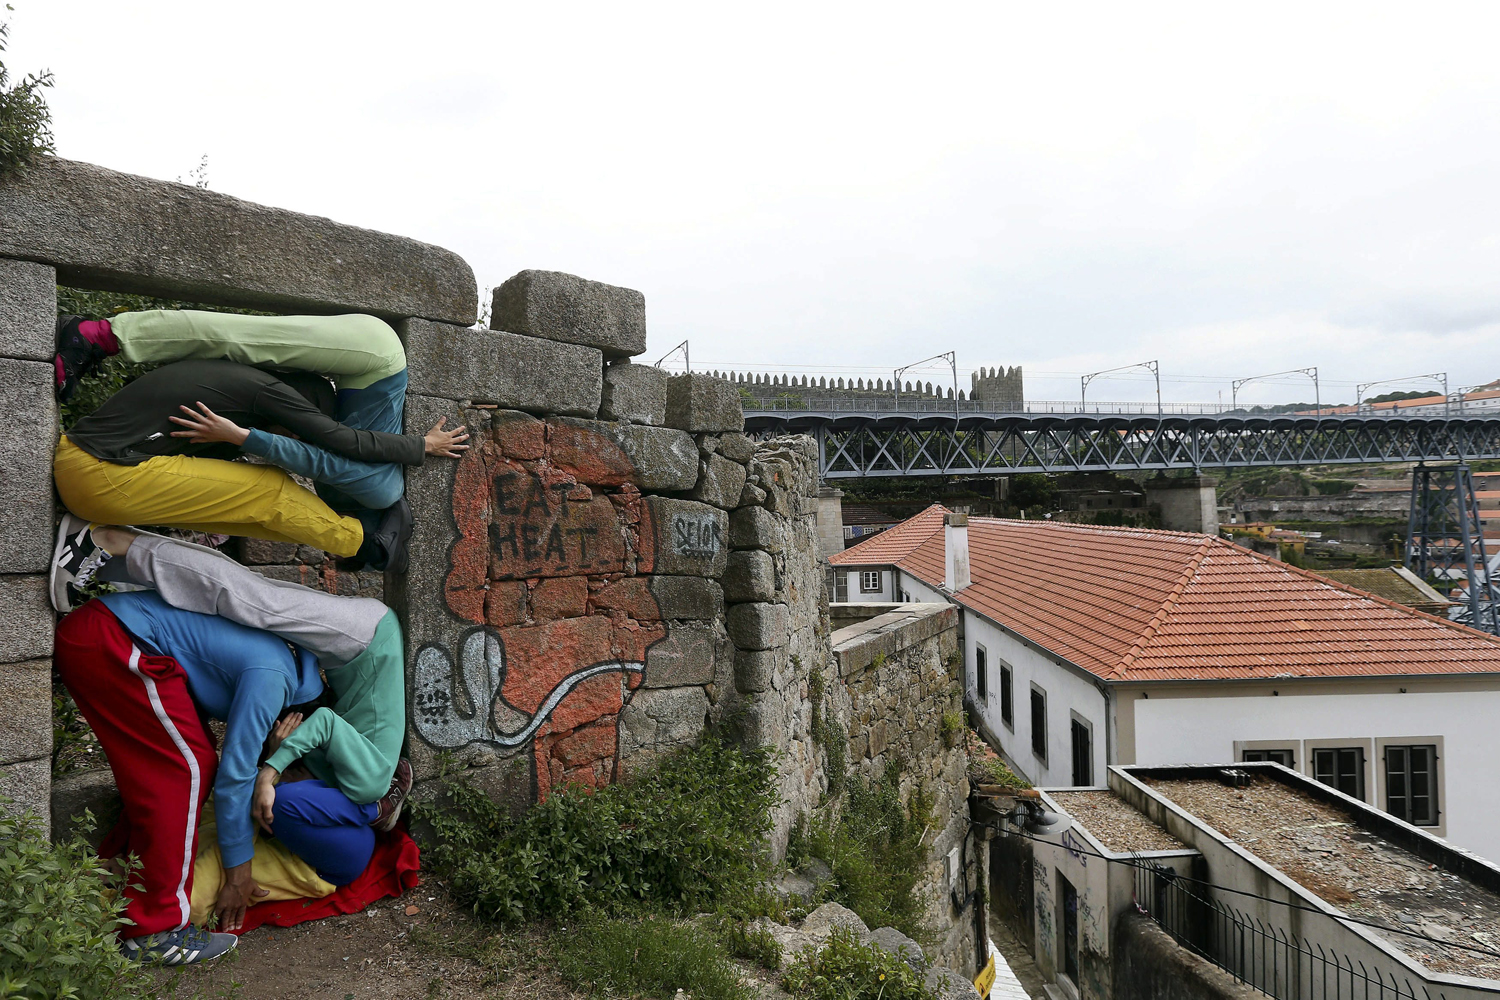 June 6, 2013.  Performers squeeze their bodies into selected spots of architectural structures as part of the 'Bodies in Urban Spaces' project in Porto, Portugal.